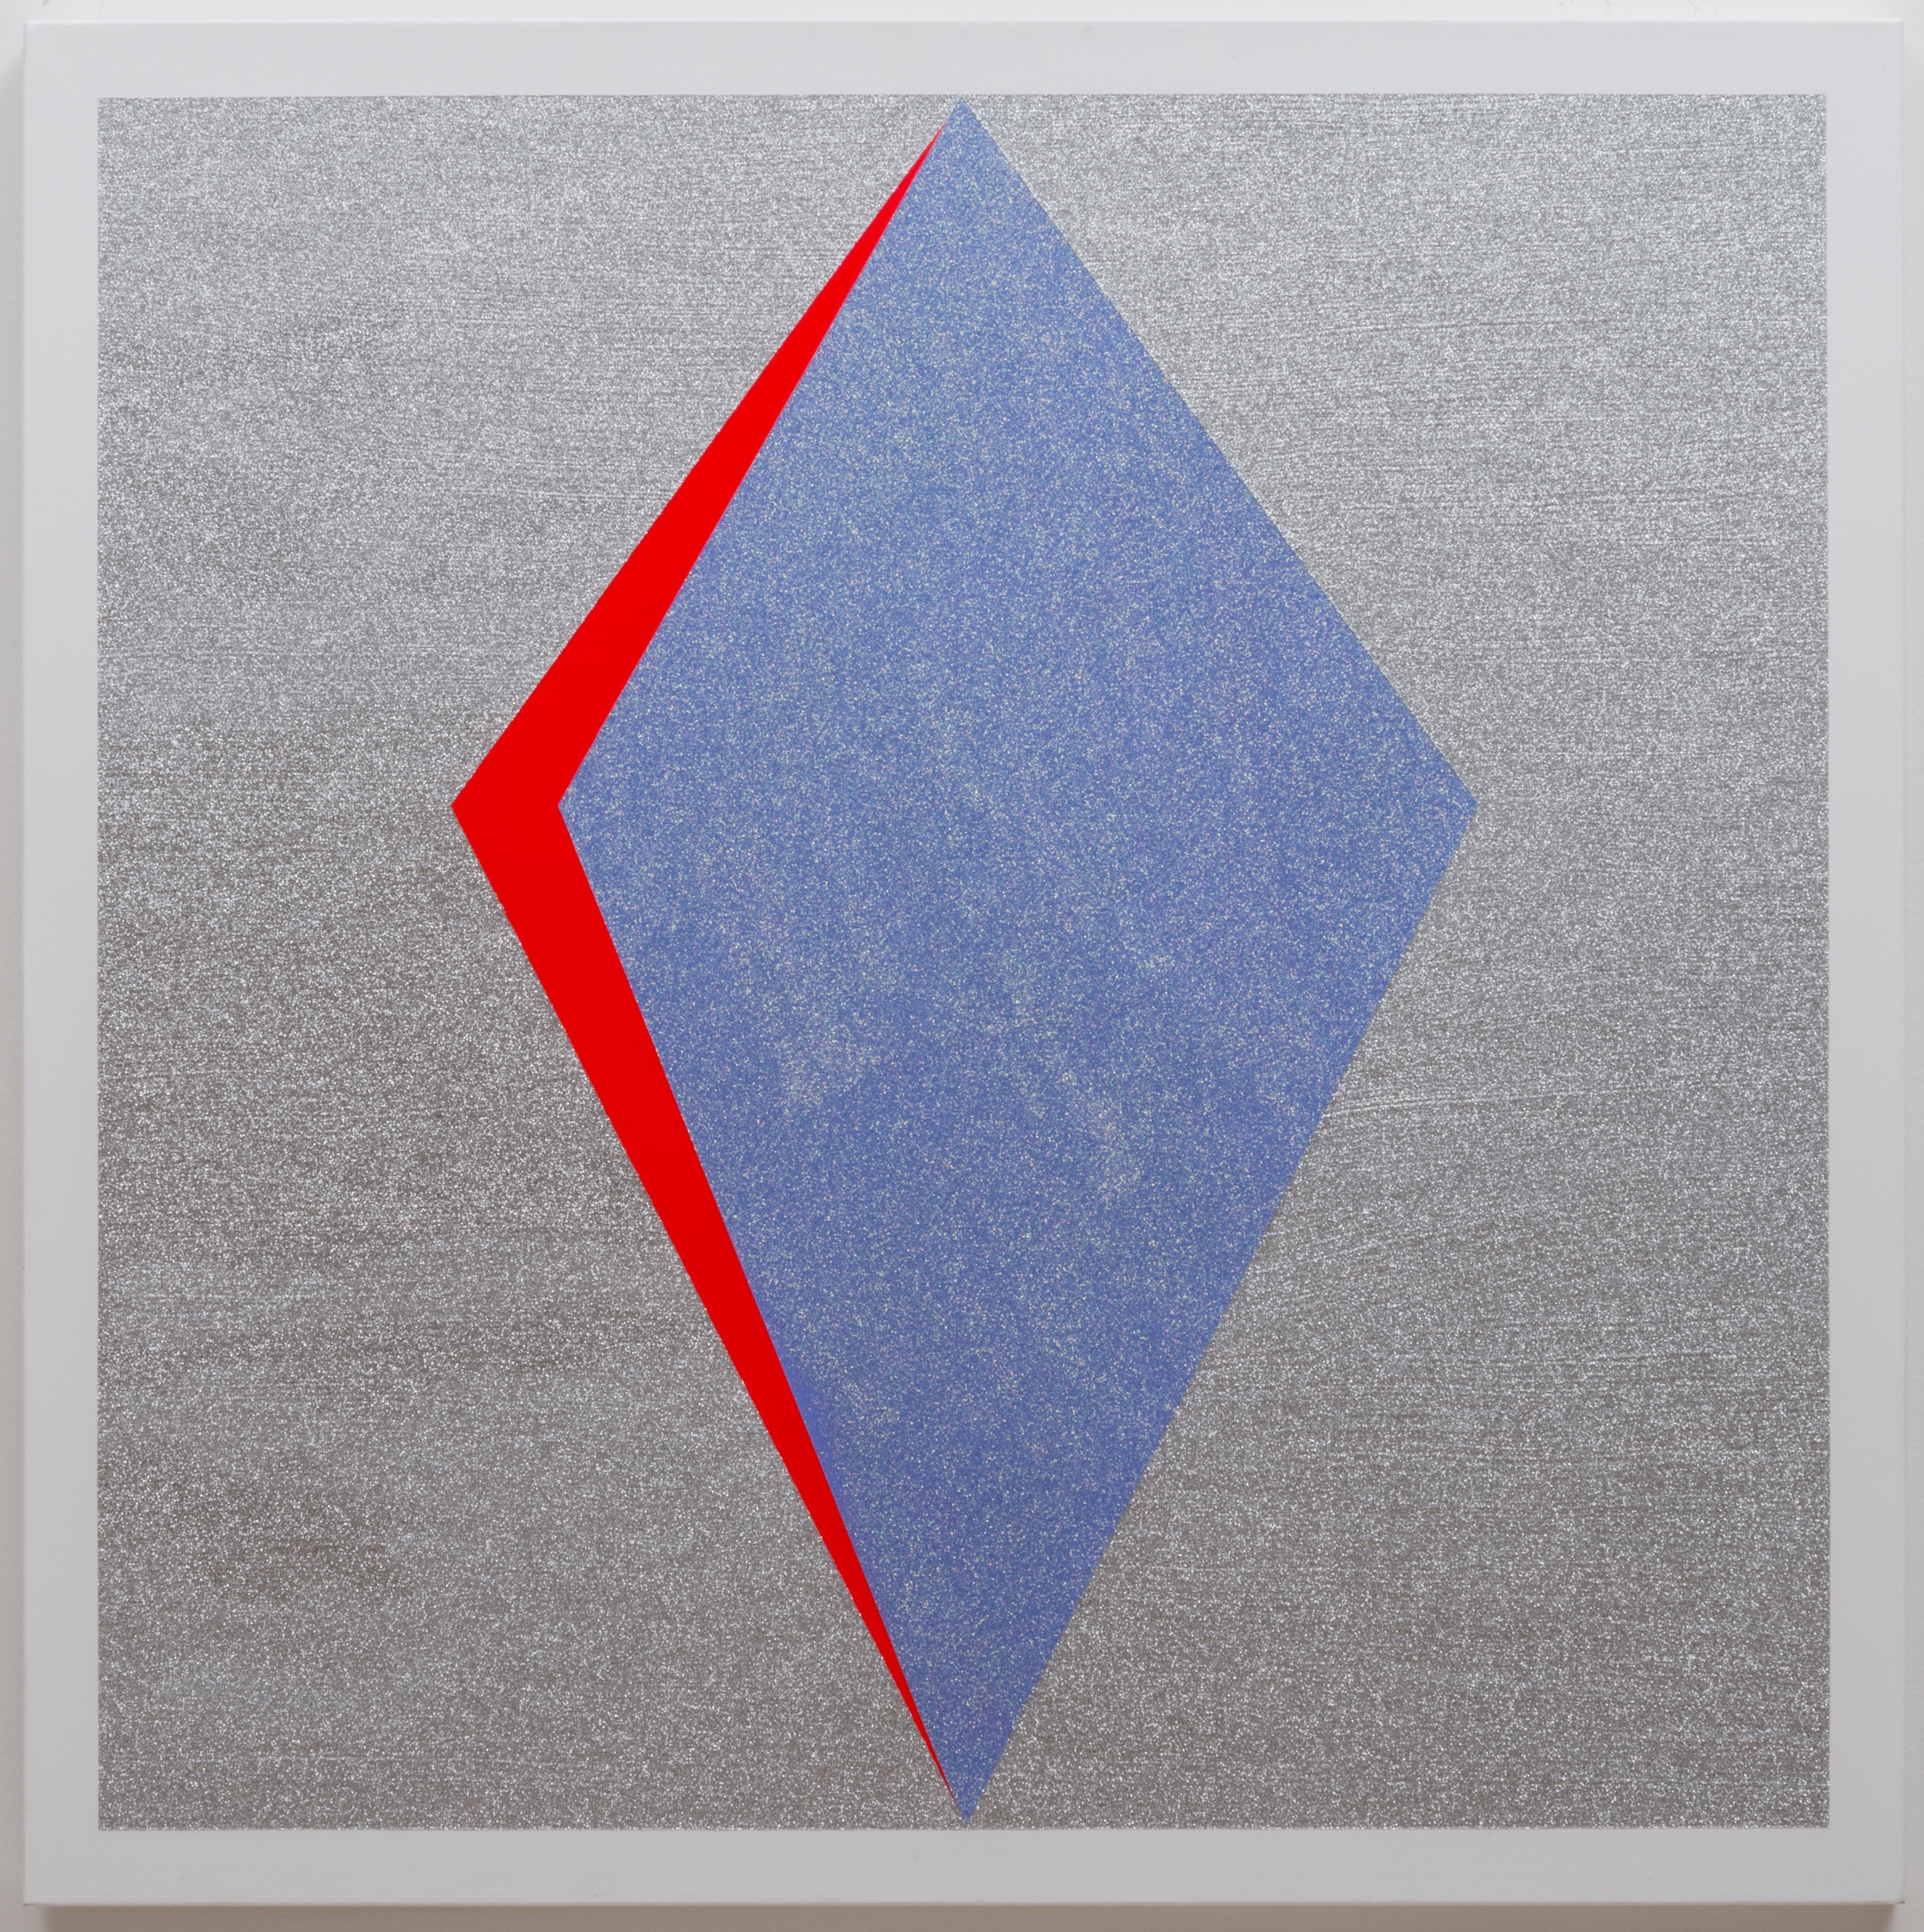 Kelly Brumfield-Woods,  Red Silver #1  (2014), Acrylic and glitter on canvas, 36 x 36 inches